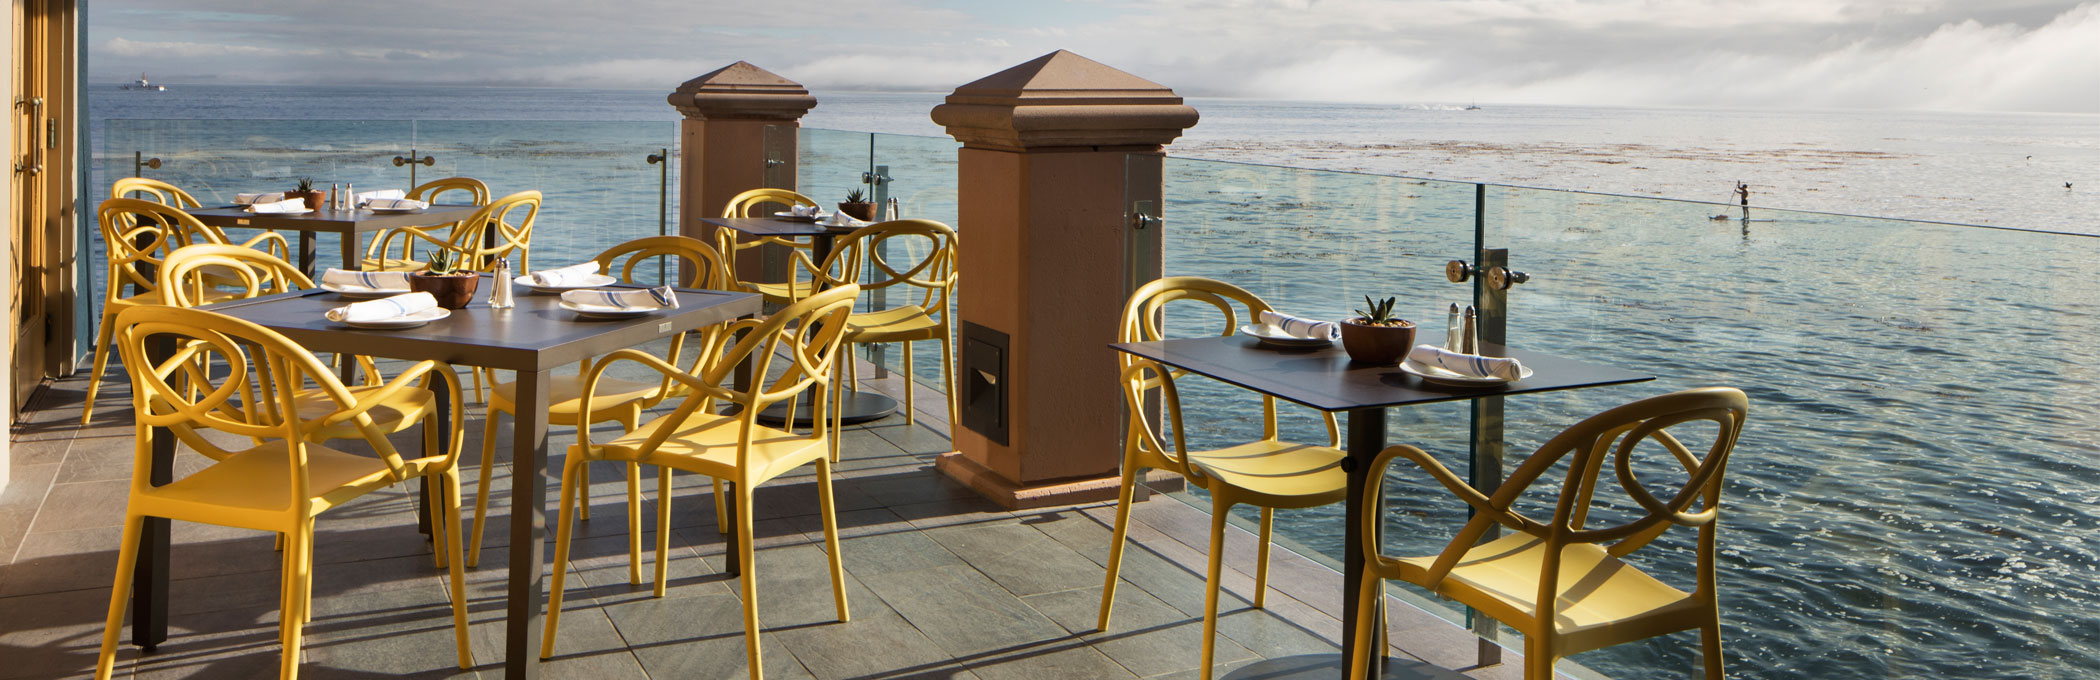 schooners outdoor patio with yellow chairs and a view of the water